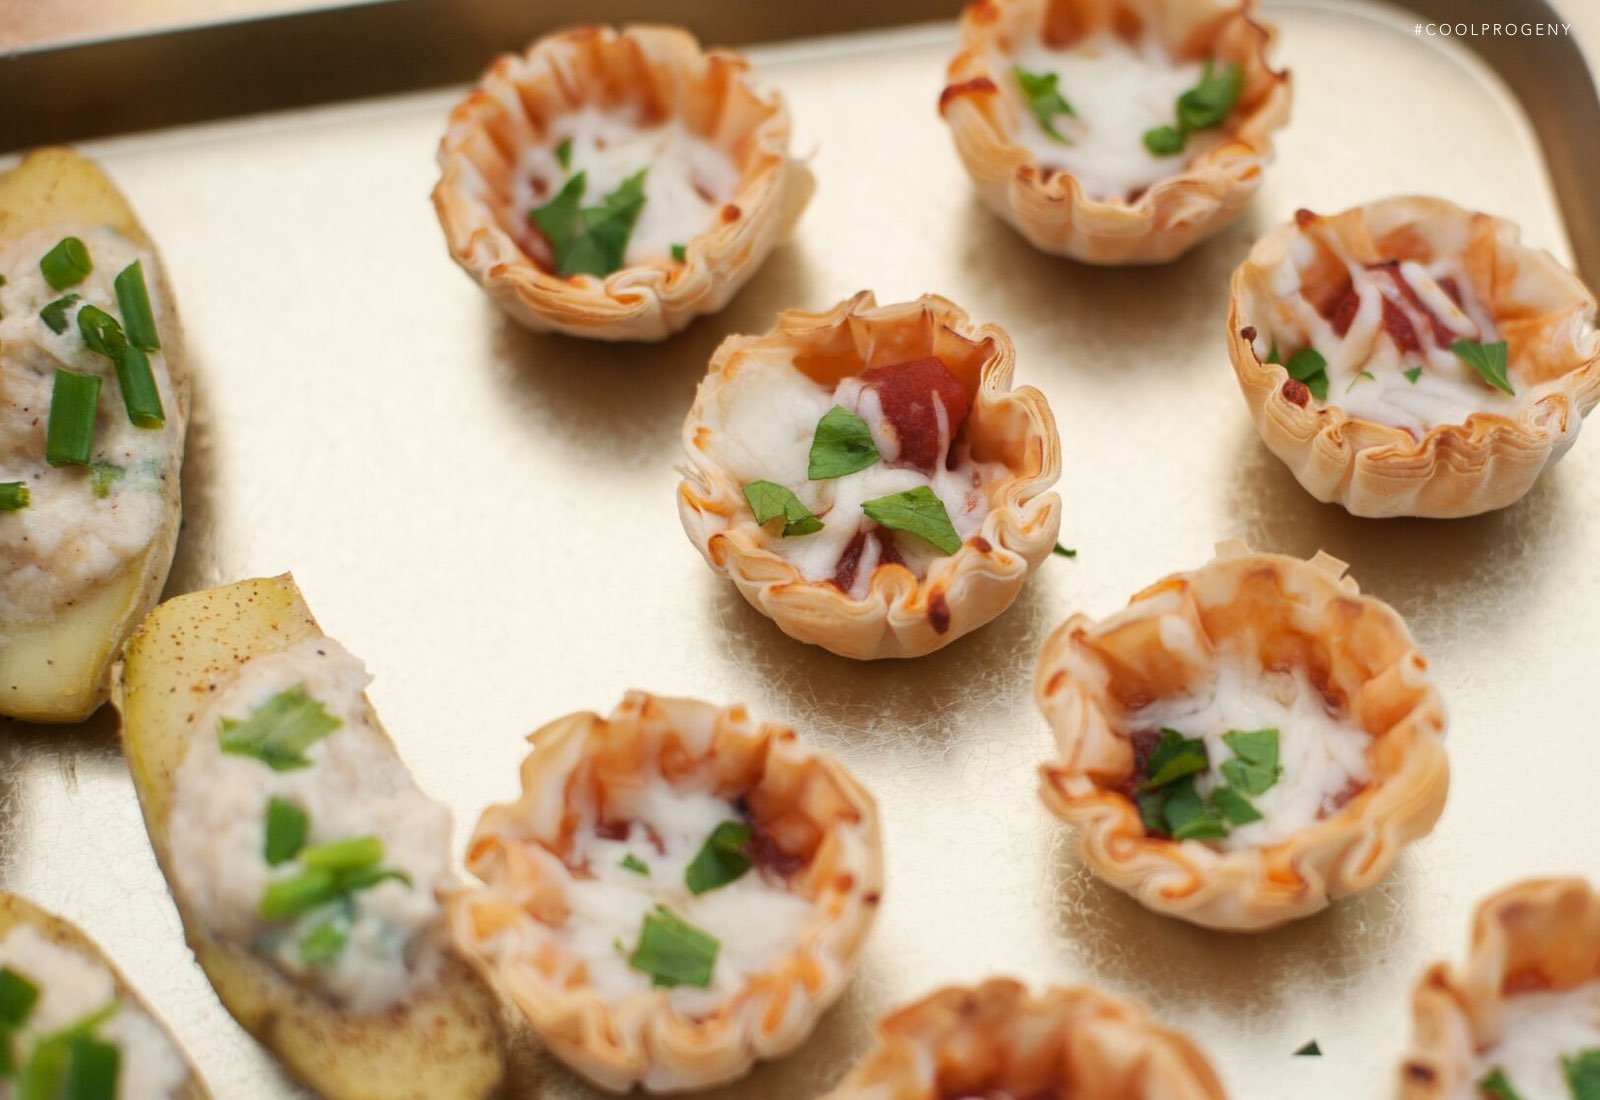 Mini Pizza Tarts - (cool) progeny